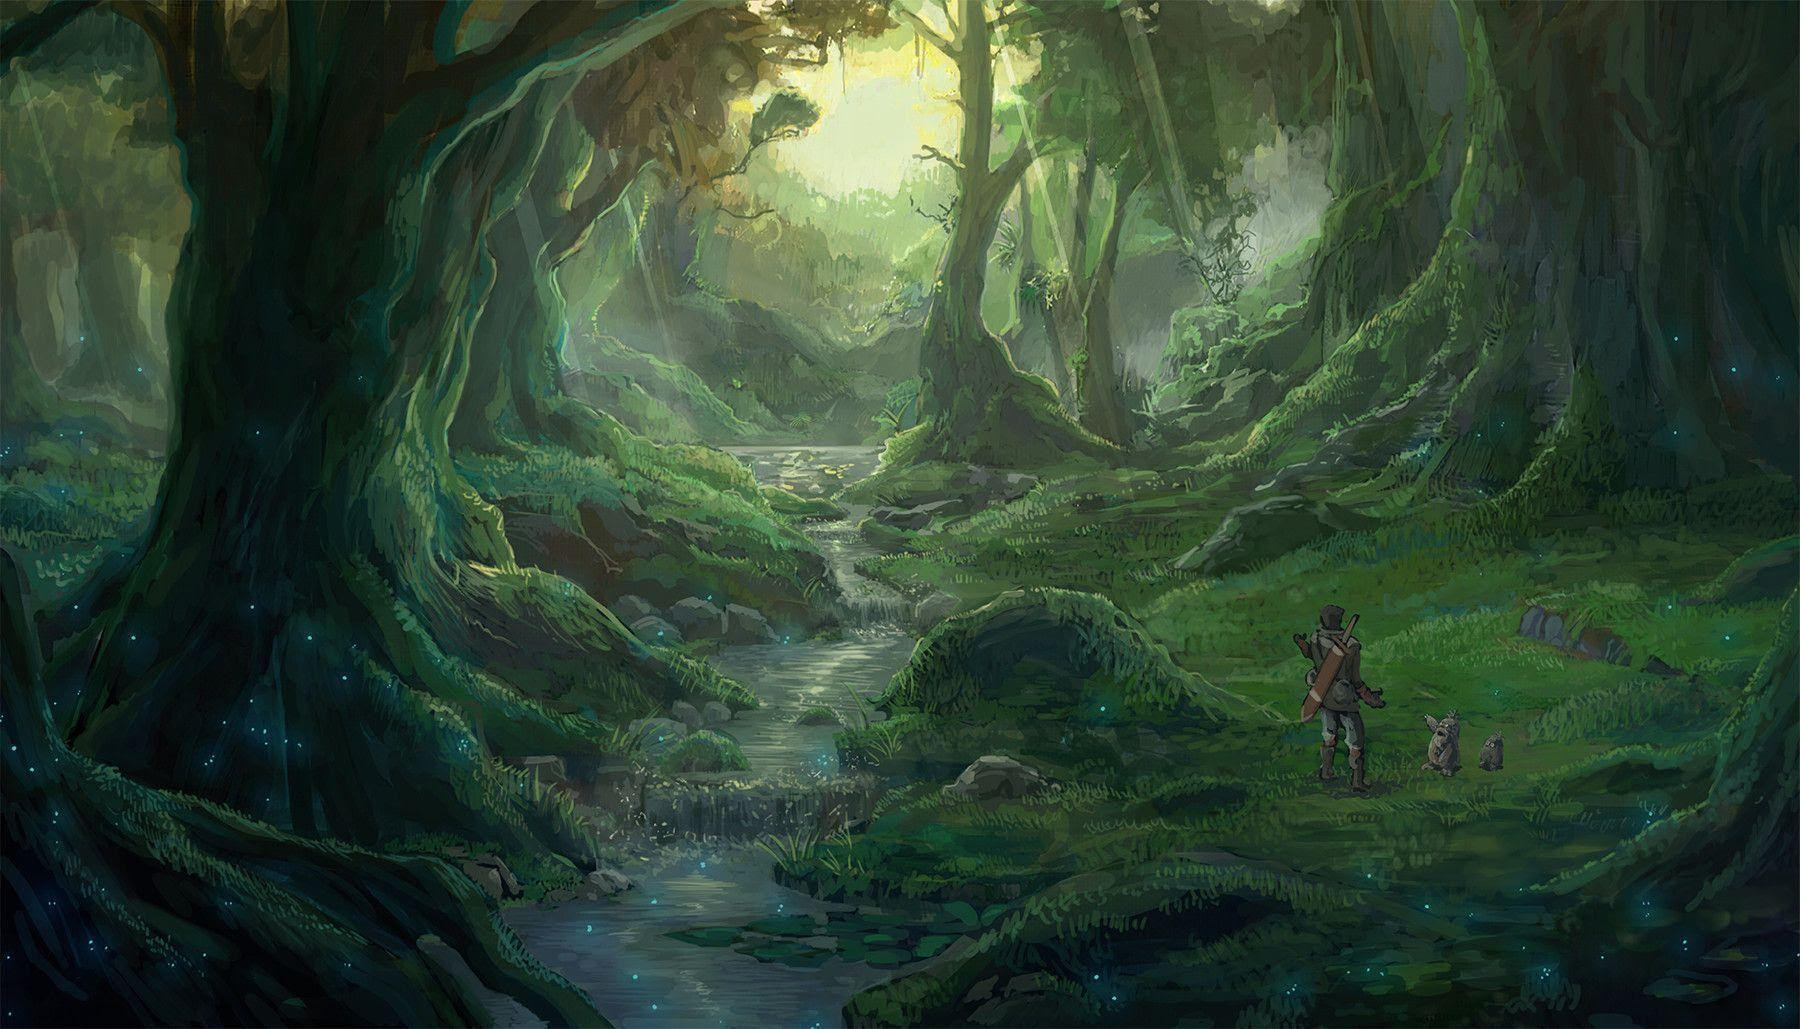 Anime Forest Backgrounds - Wallpaper Cave